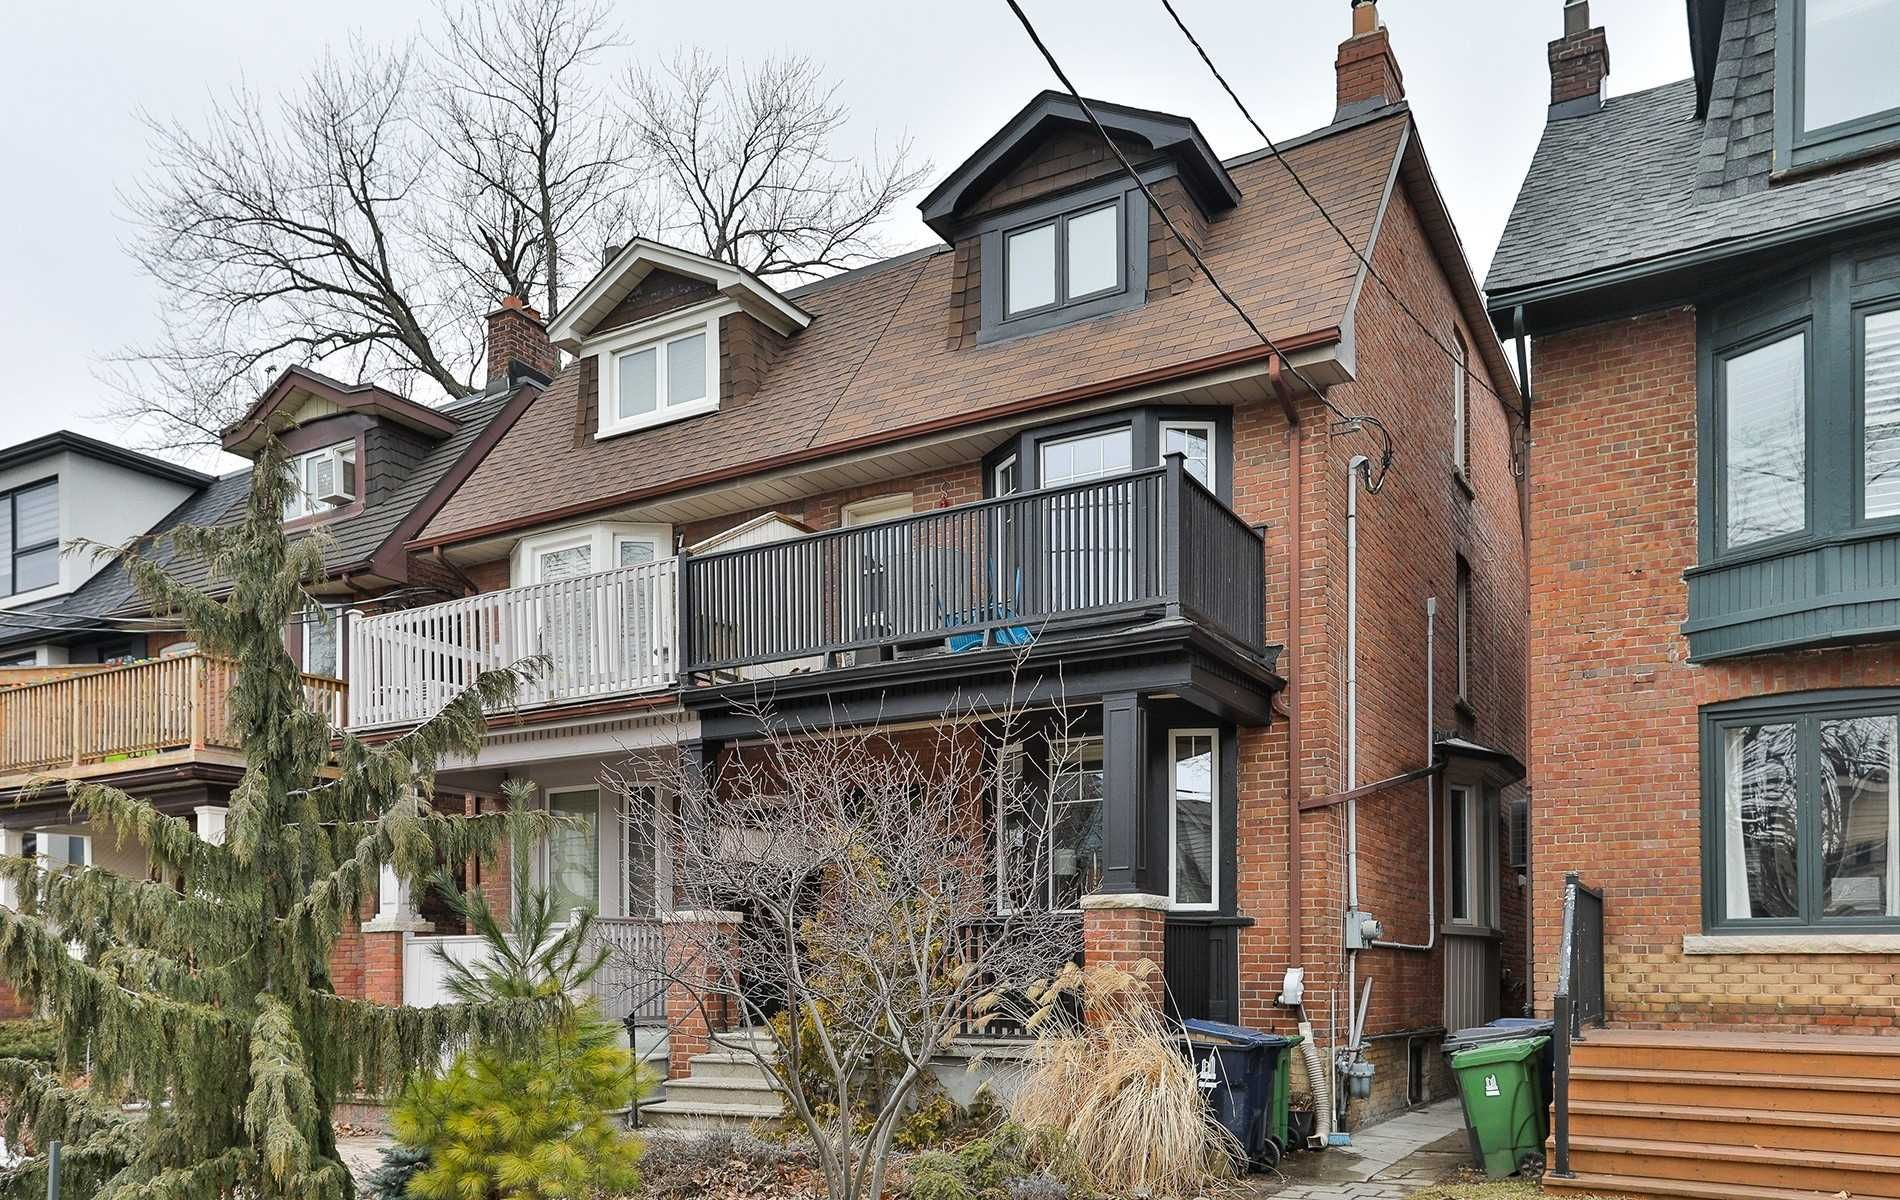 Main Photo: 200 Browning Ave in Toronto: Playter Estates-Danforth Freehold for sale (Toronto E03)  : MLS®# E4702267